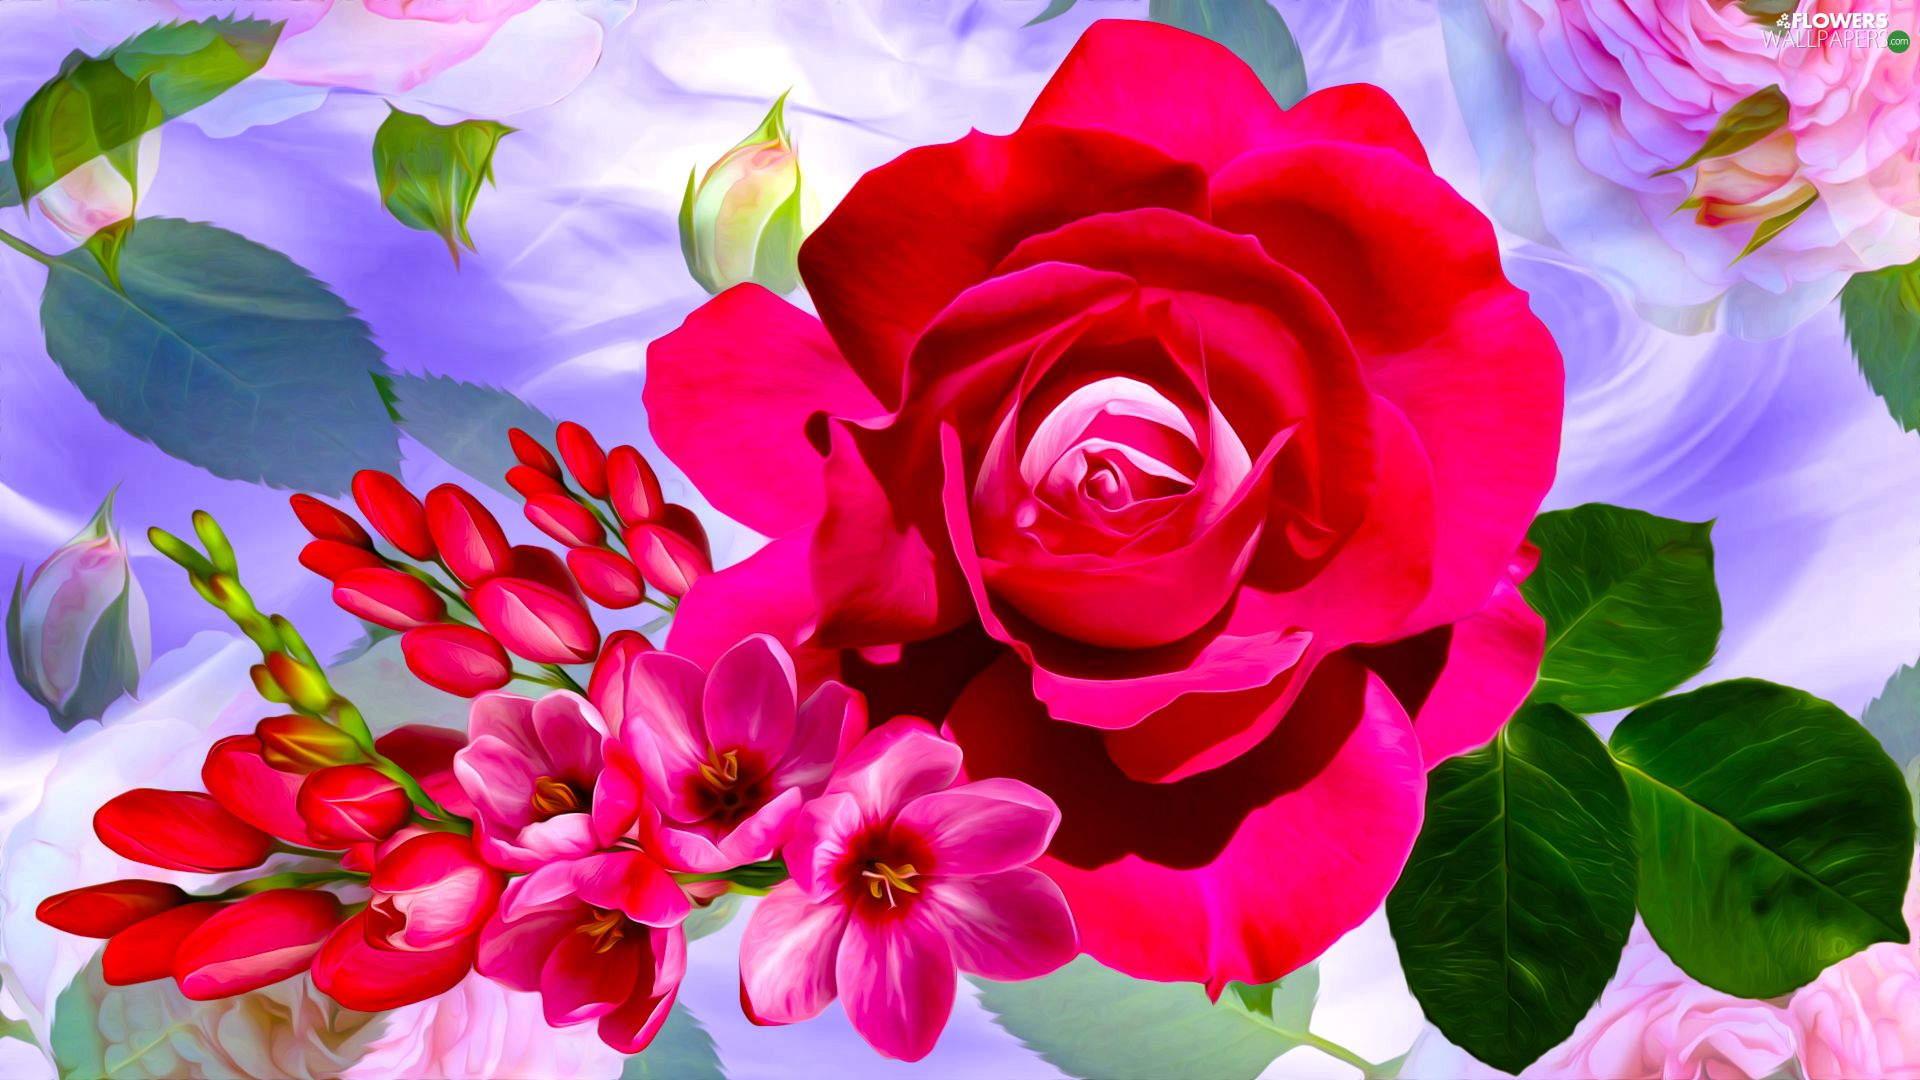 rose, graphics, Flowers, Freesias, Red